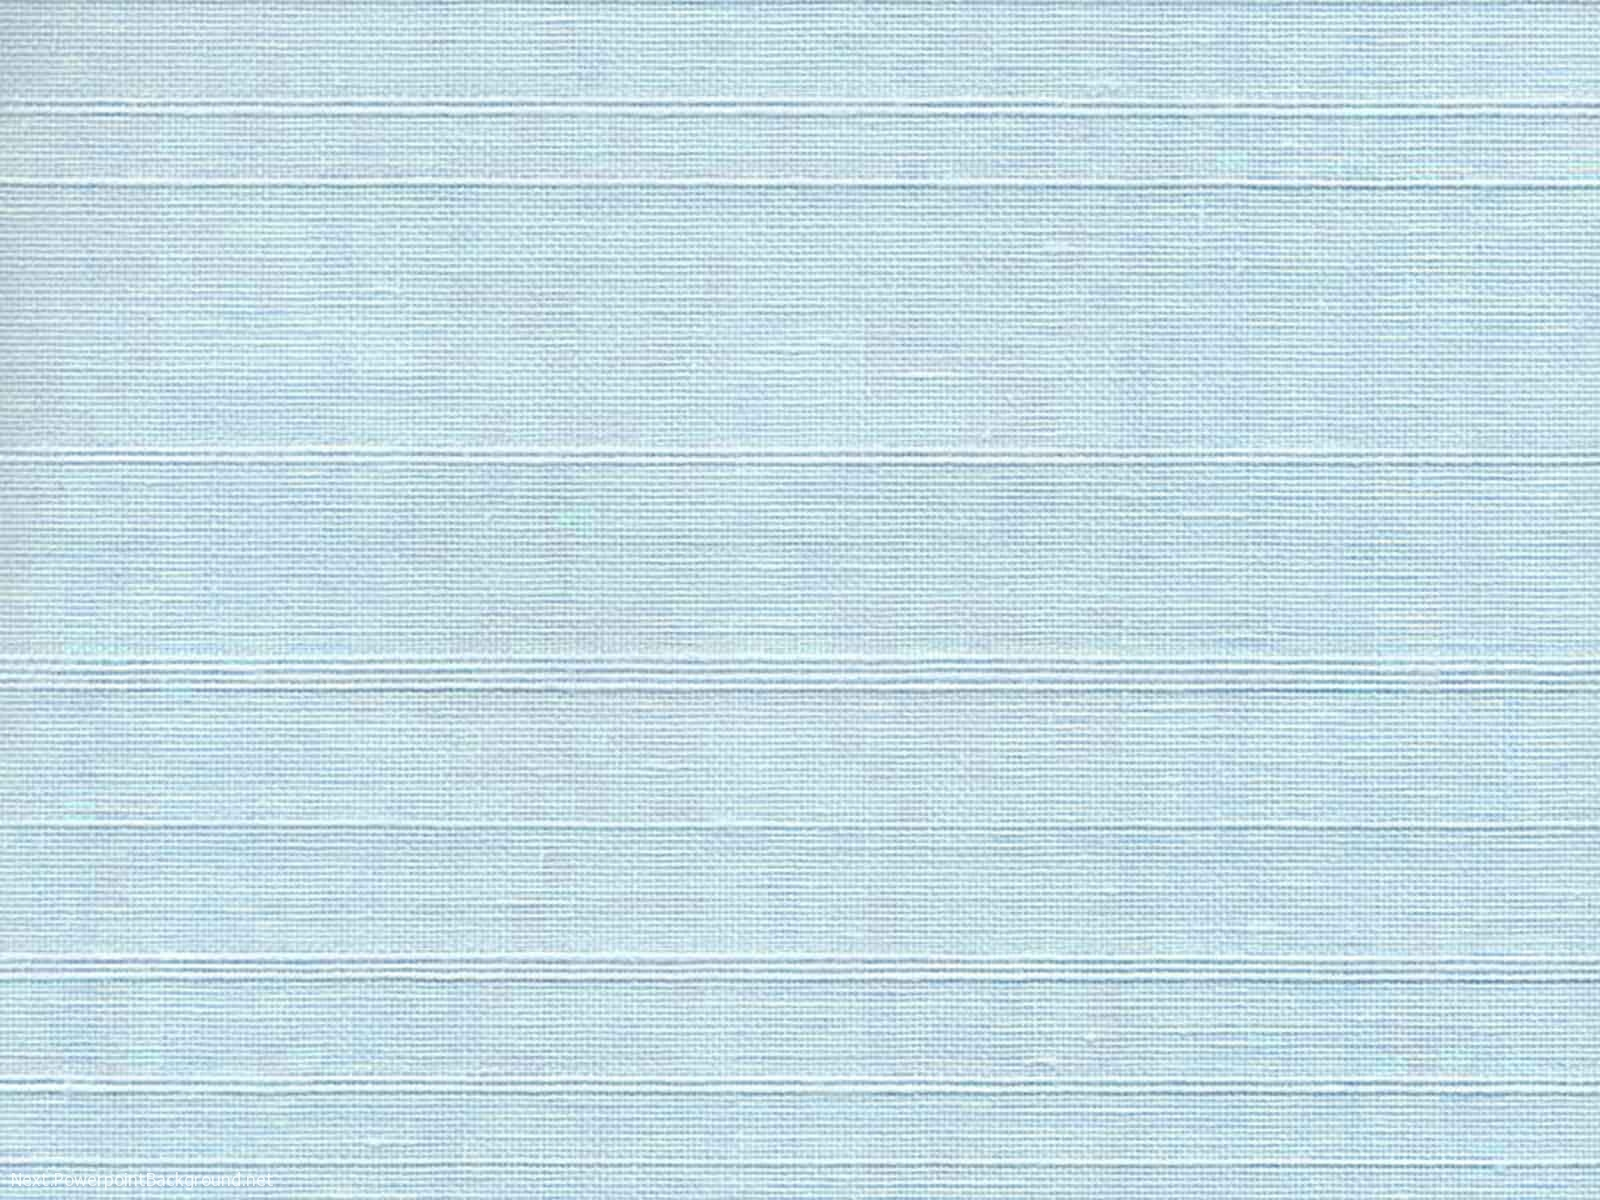 blue-linen-paper-background-powerpoint